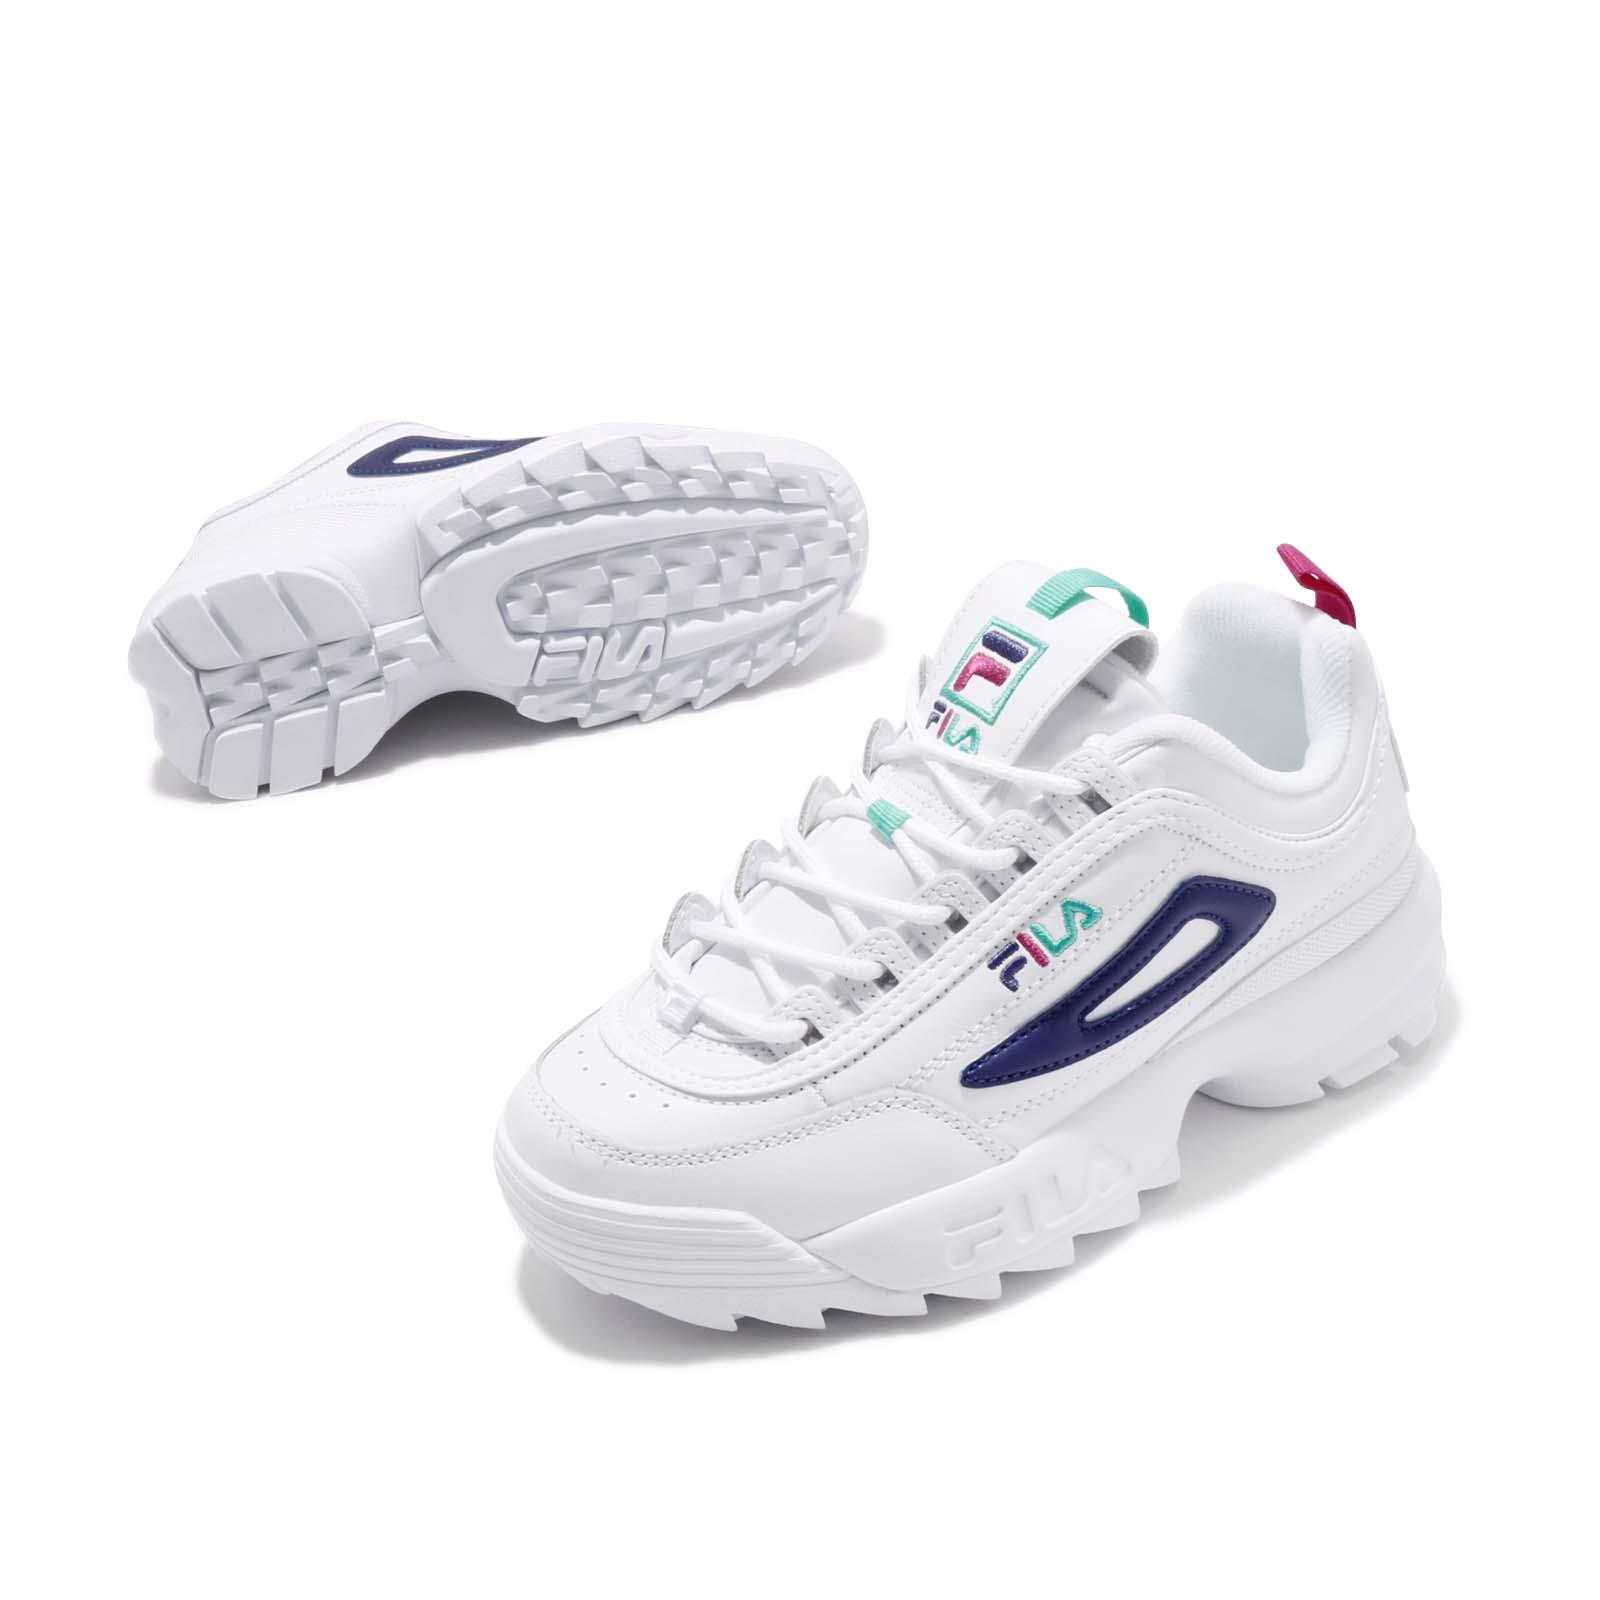 hot-selling discount buy best deals on Details about Fila Disruptor II Premium White Blue Green Pink Women Chunky  Platform Shoes